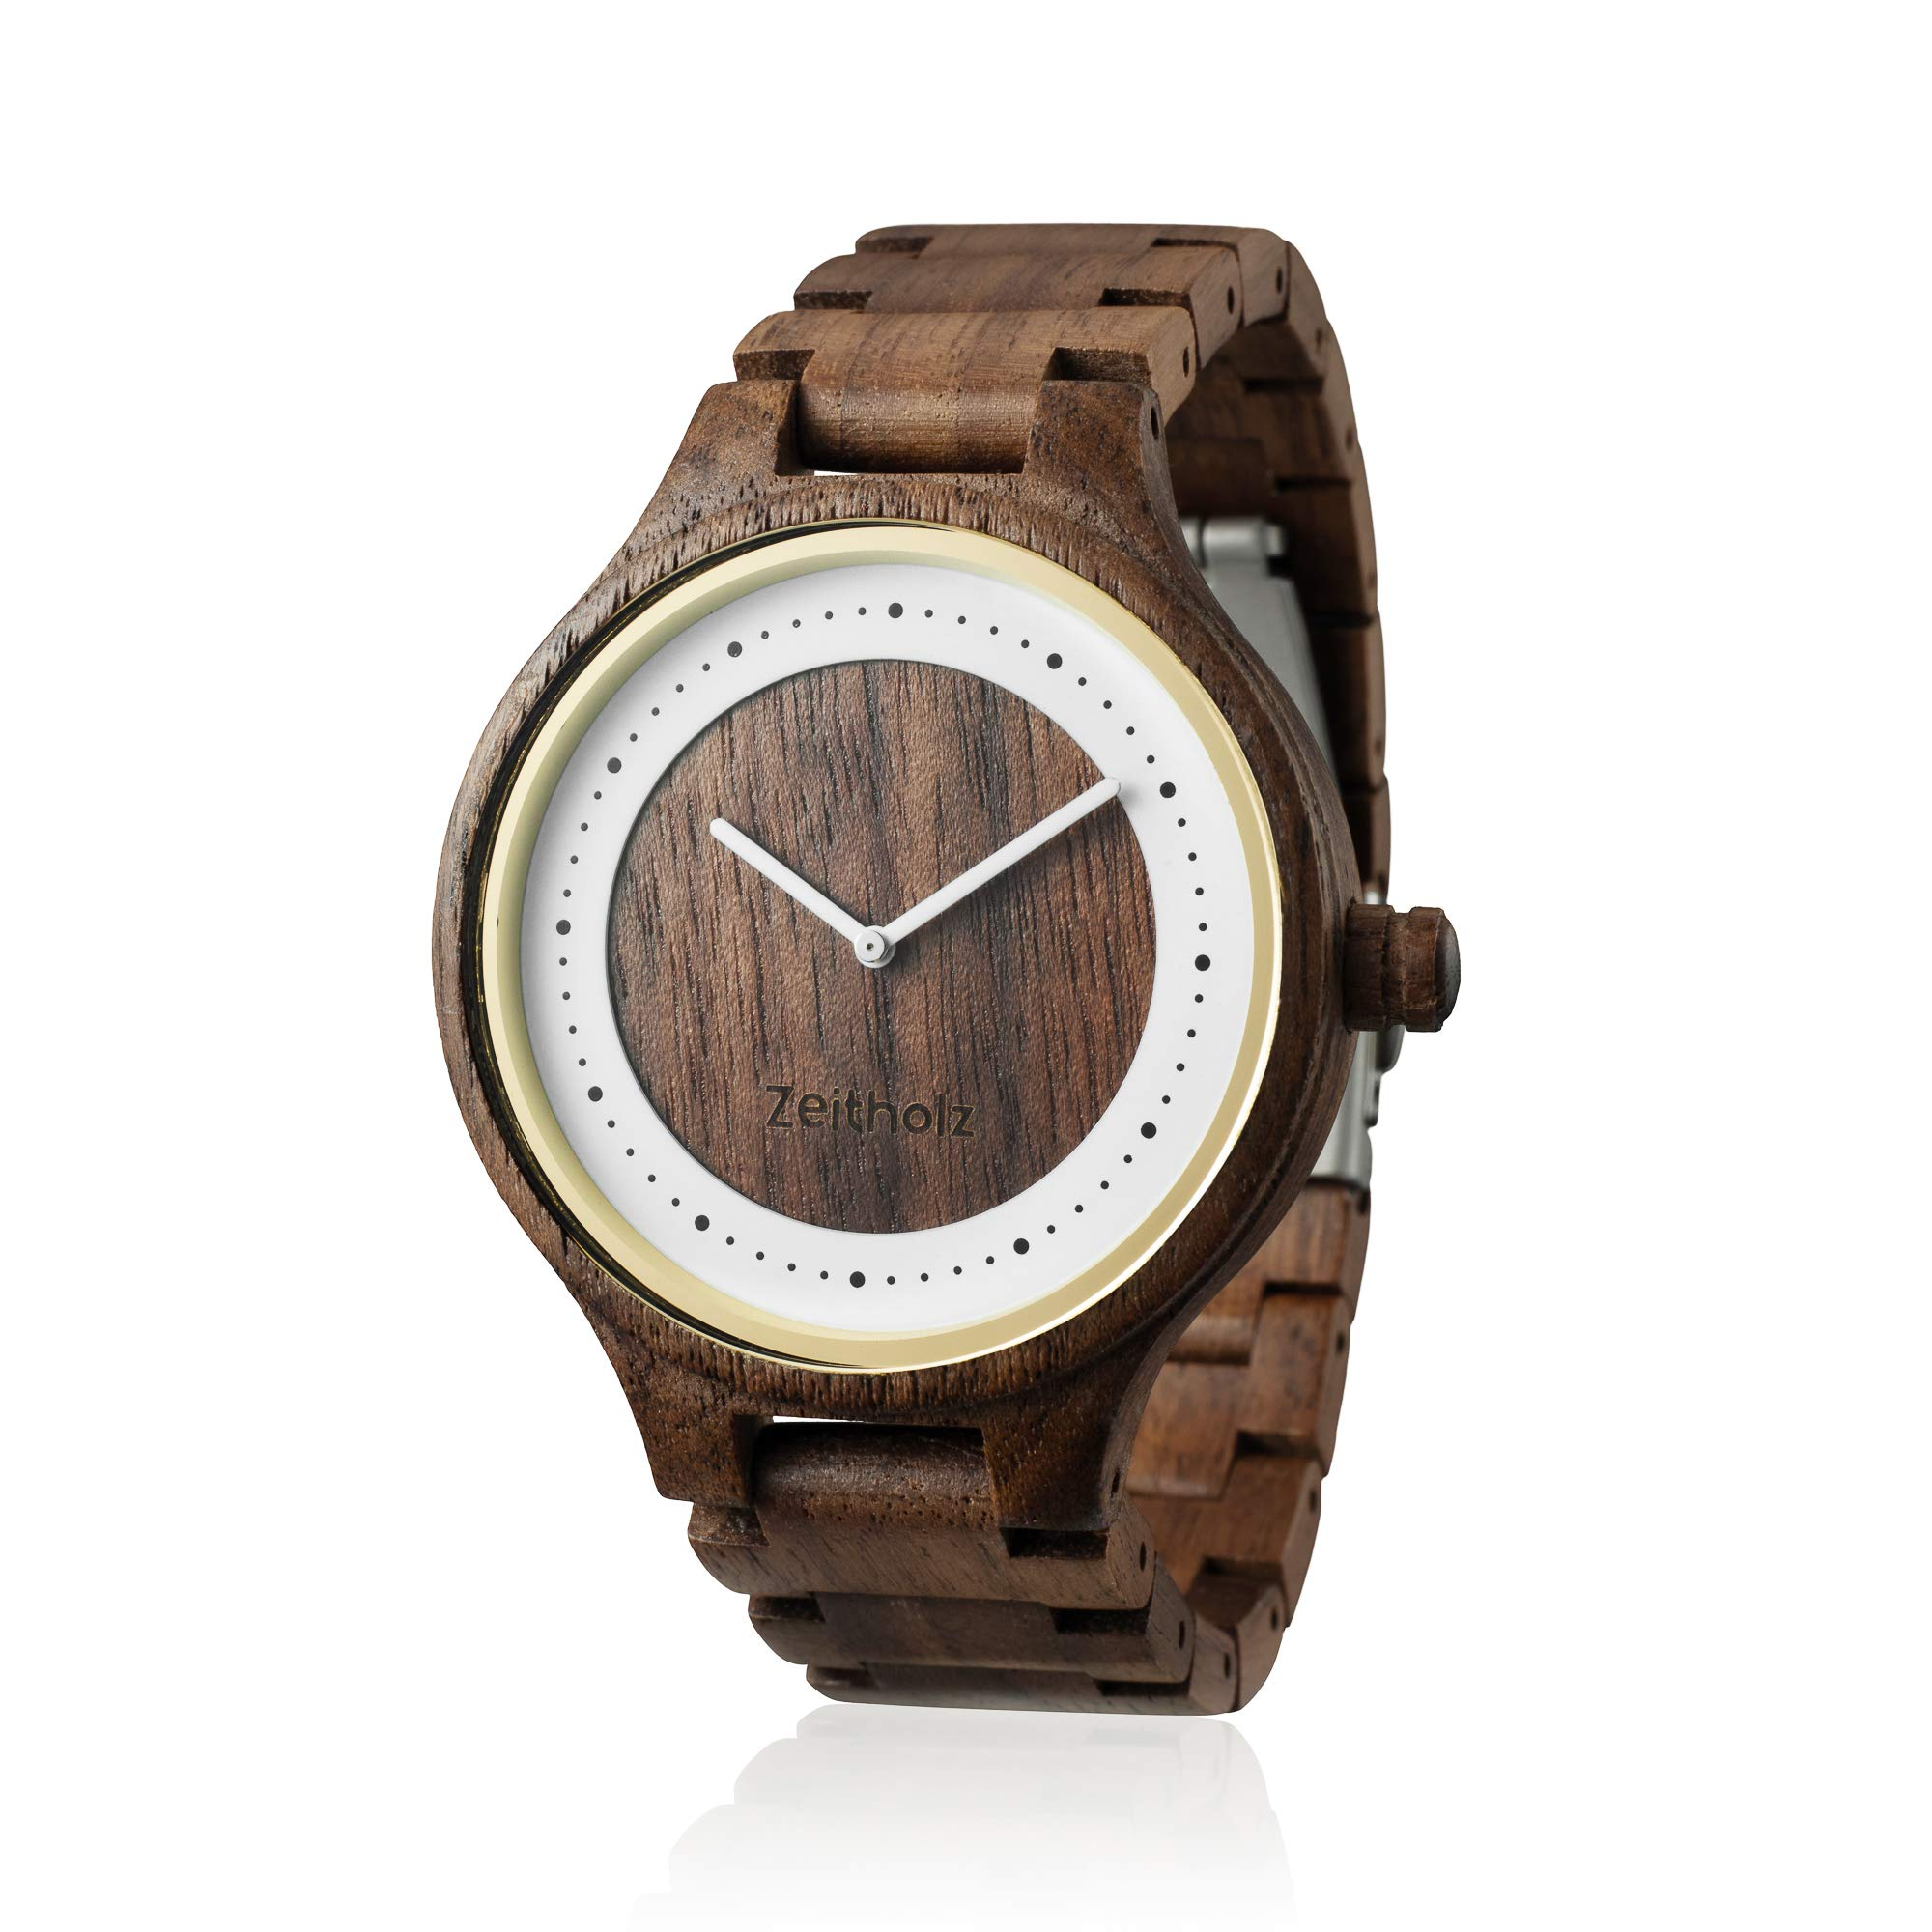 "Zeitholz Men's Wooden Watch, Model Dohma - 100% Natural Walnut Wood Case and Band - ""Miyota"" GL30 Movement - Lightweight, Handmade and Hypoallergenic Analog Quartz Wrist Watch"